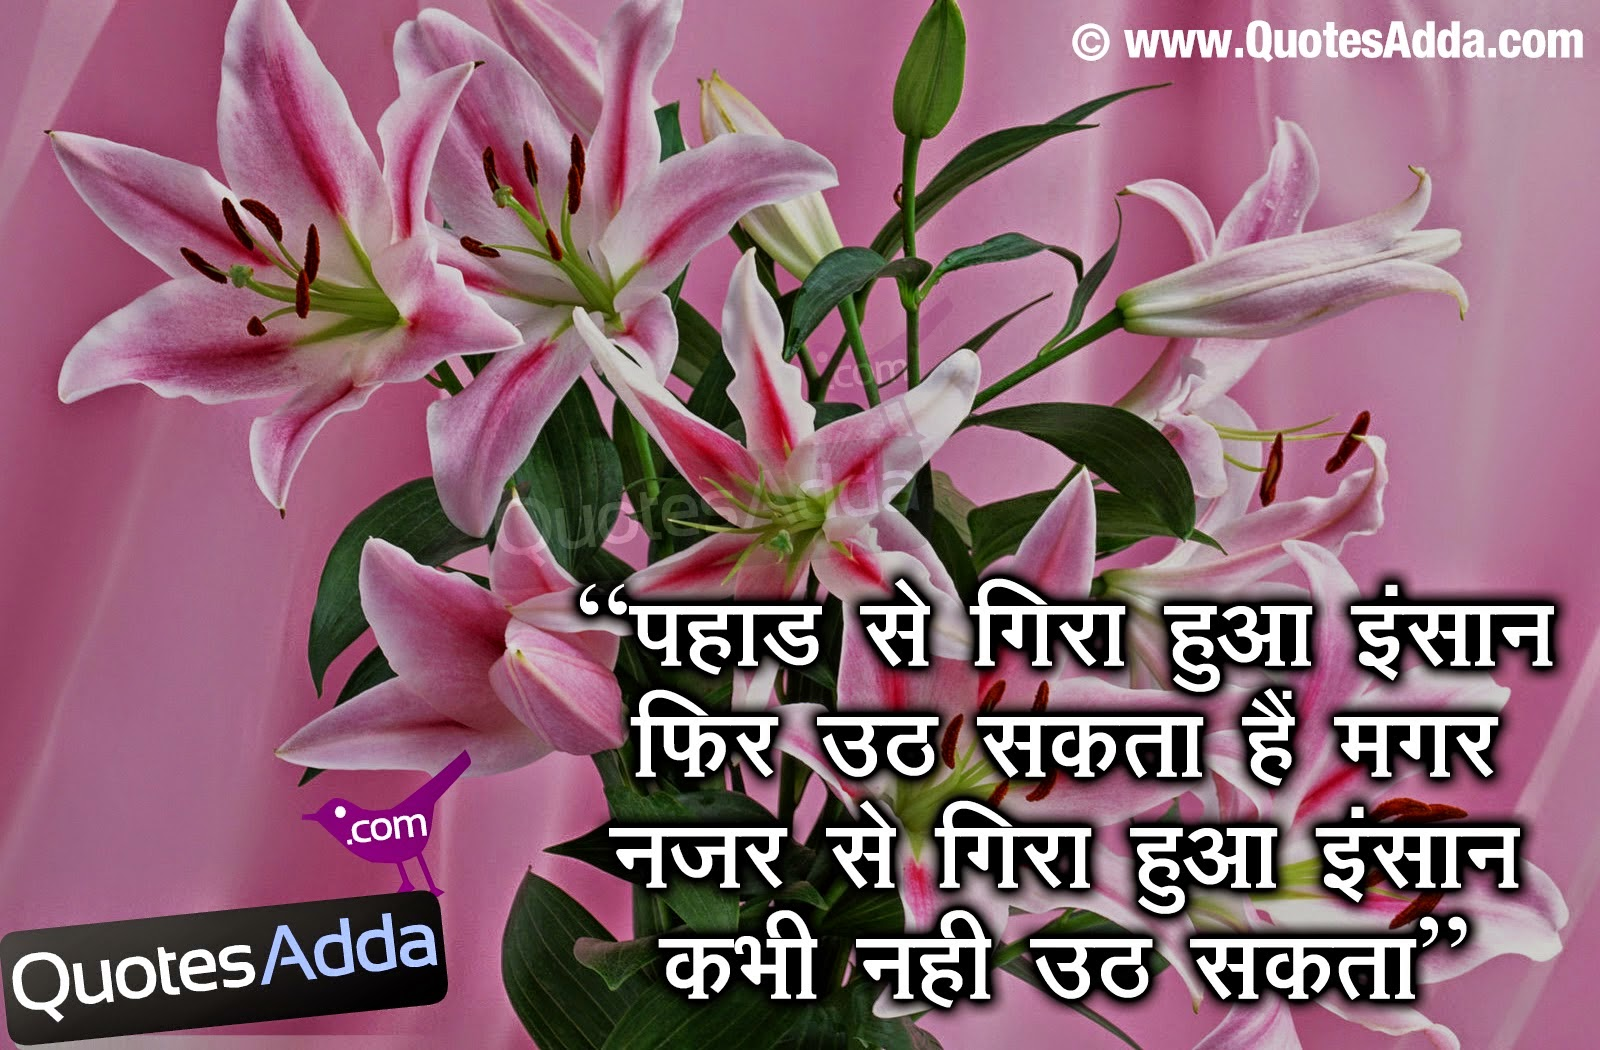 Shayari Hindi Romantic Love Sms Love Romantic Image Sms